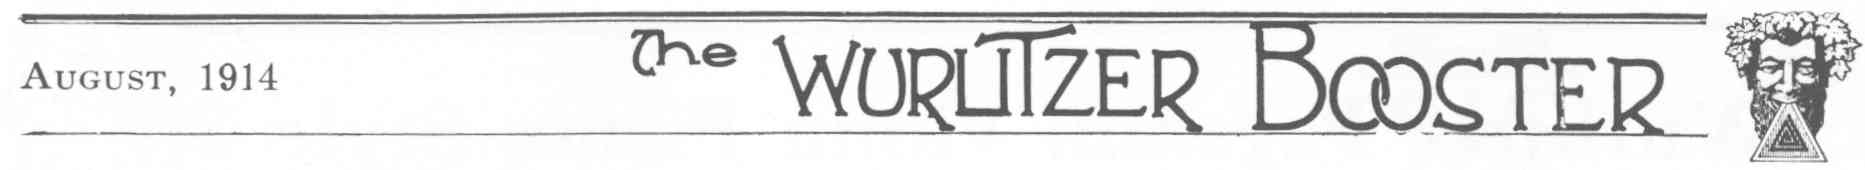 Masthead for the August, 1914, Wurlitzer Booster.